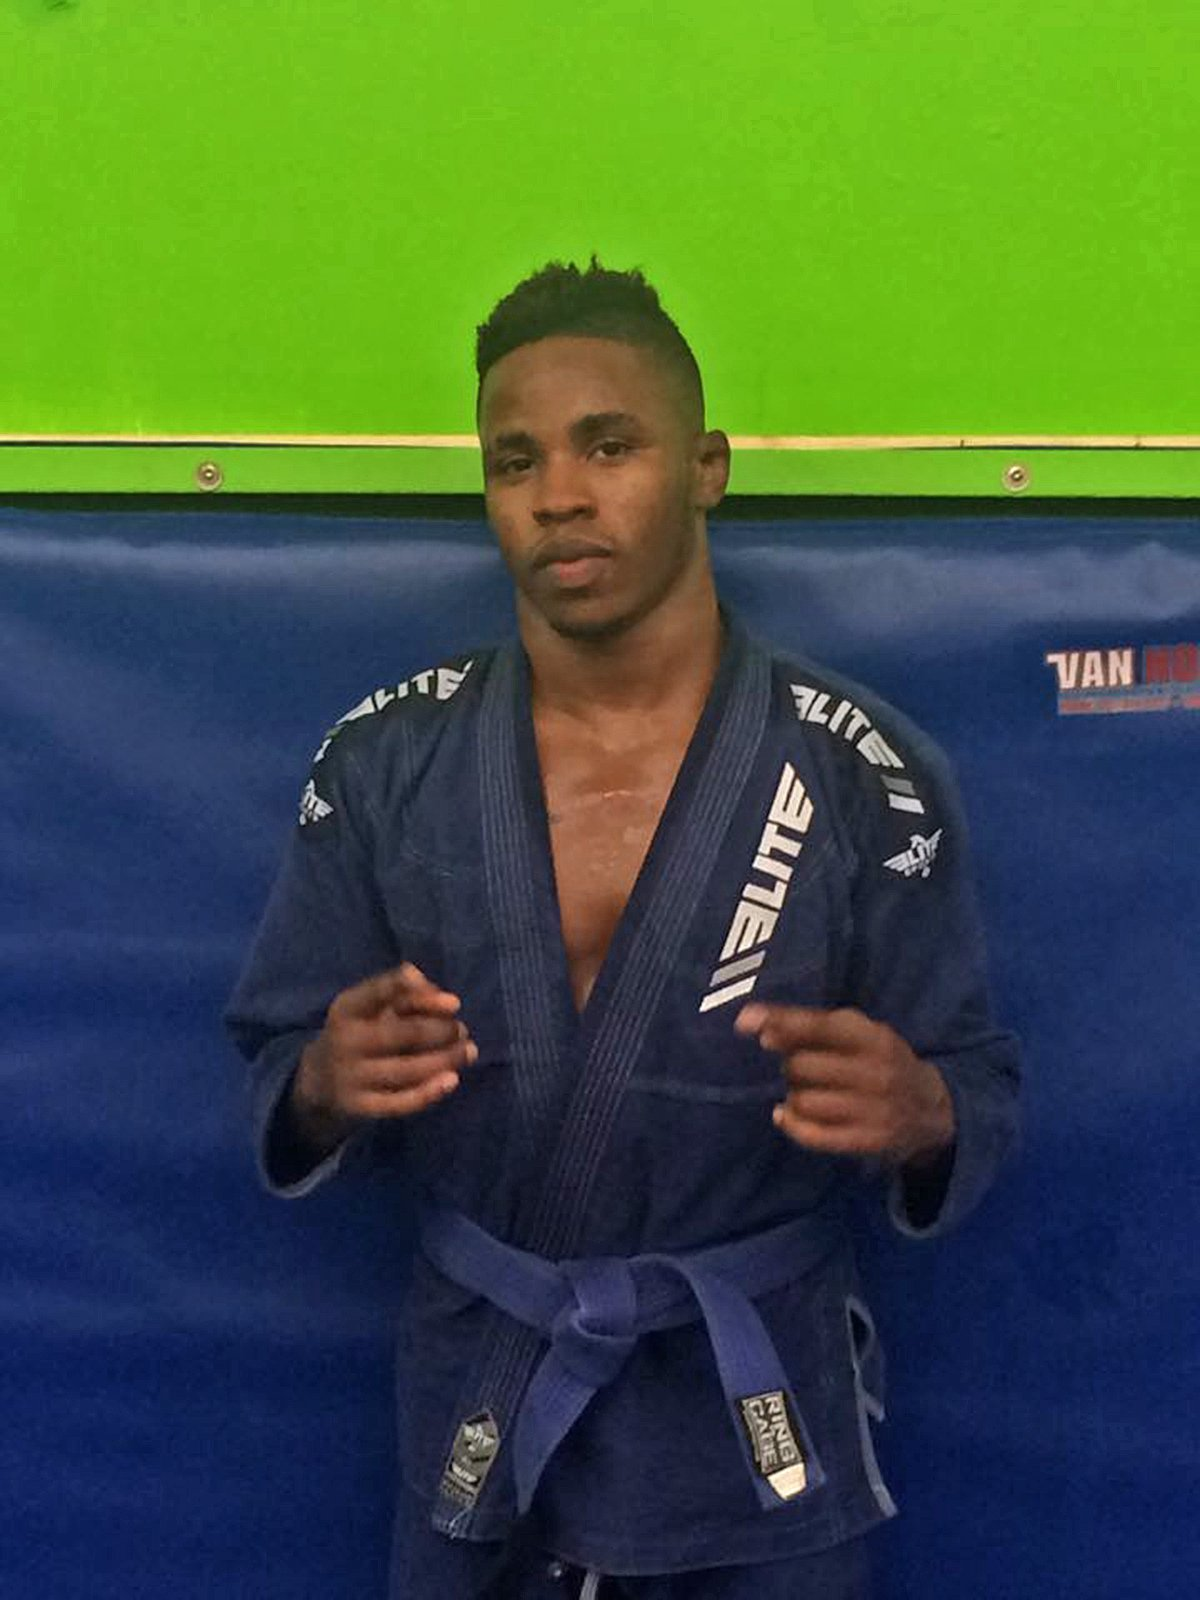 Elite Sports Team Elite Bjj Fighter Maltese Rico Tally  Image5